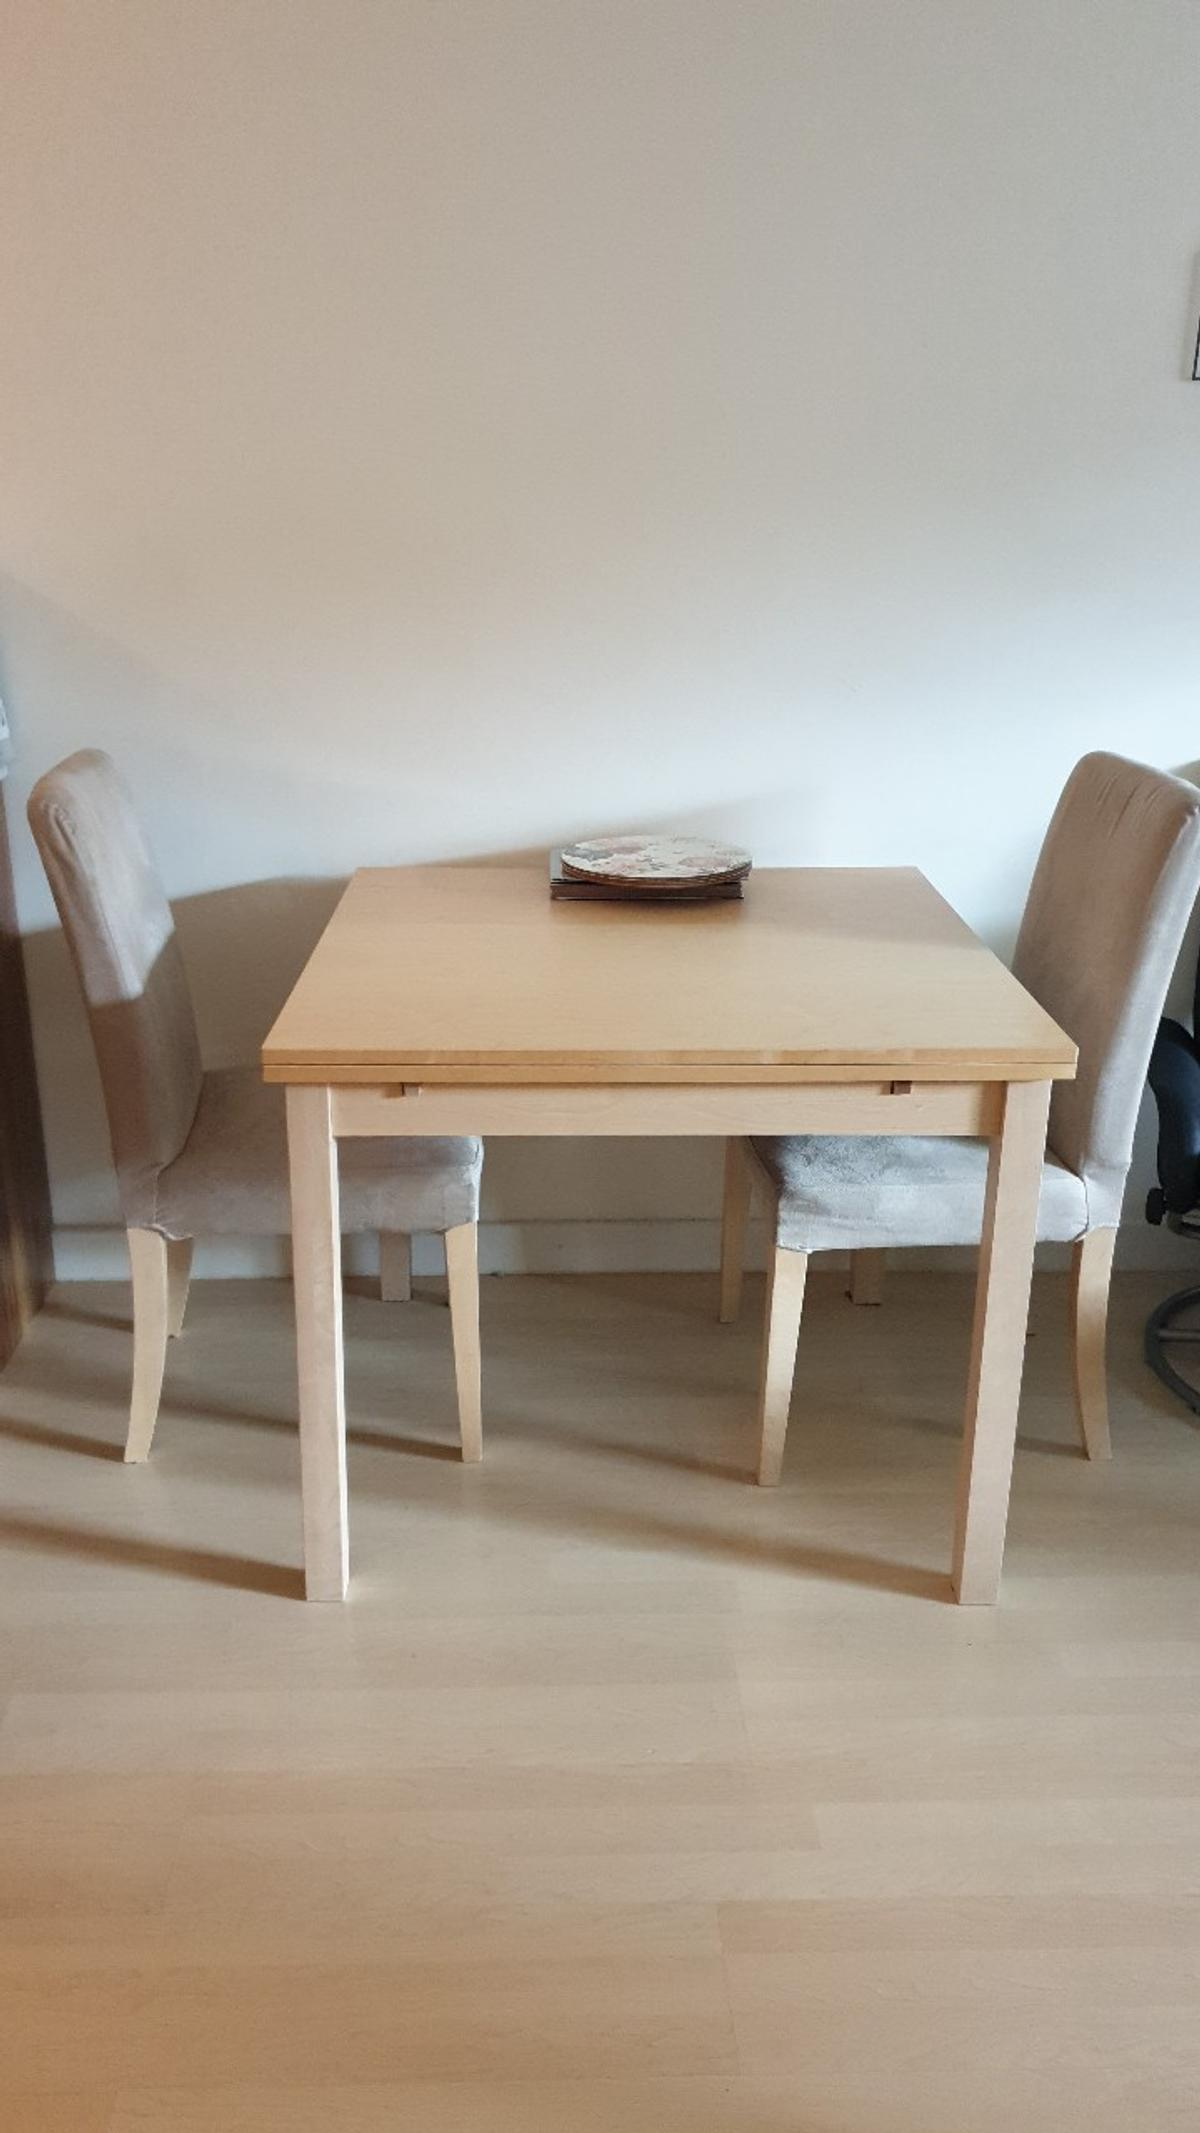 Dining Table And Two Chairs In B16 Birmingham Fur 50 00 Zum Verkauf Shpock De